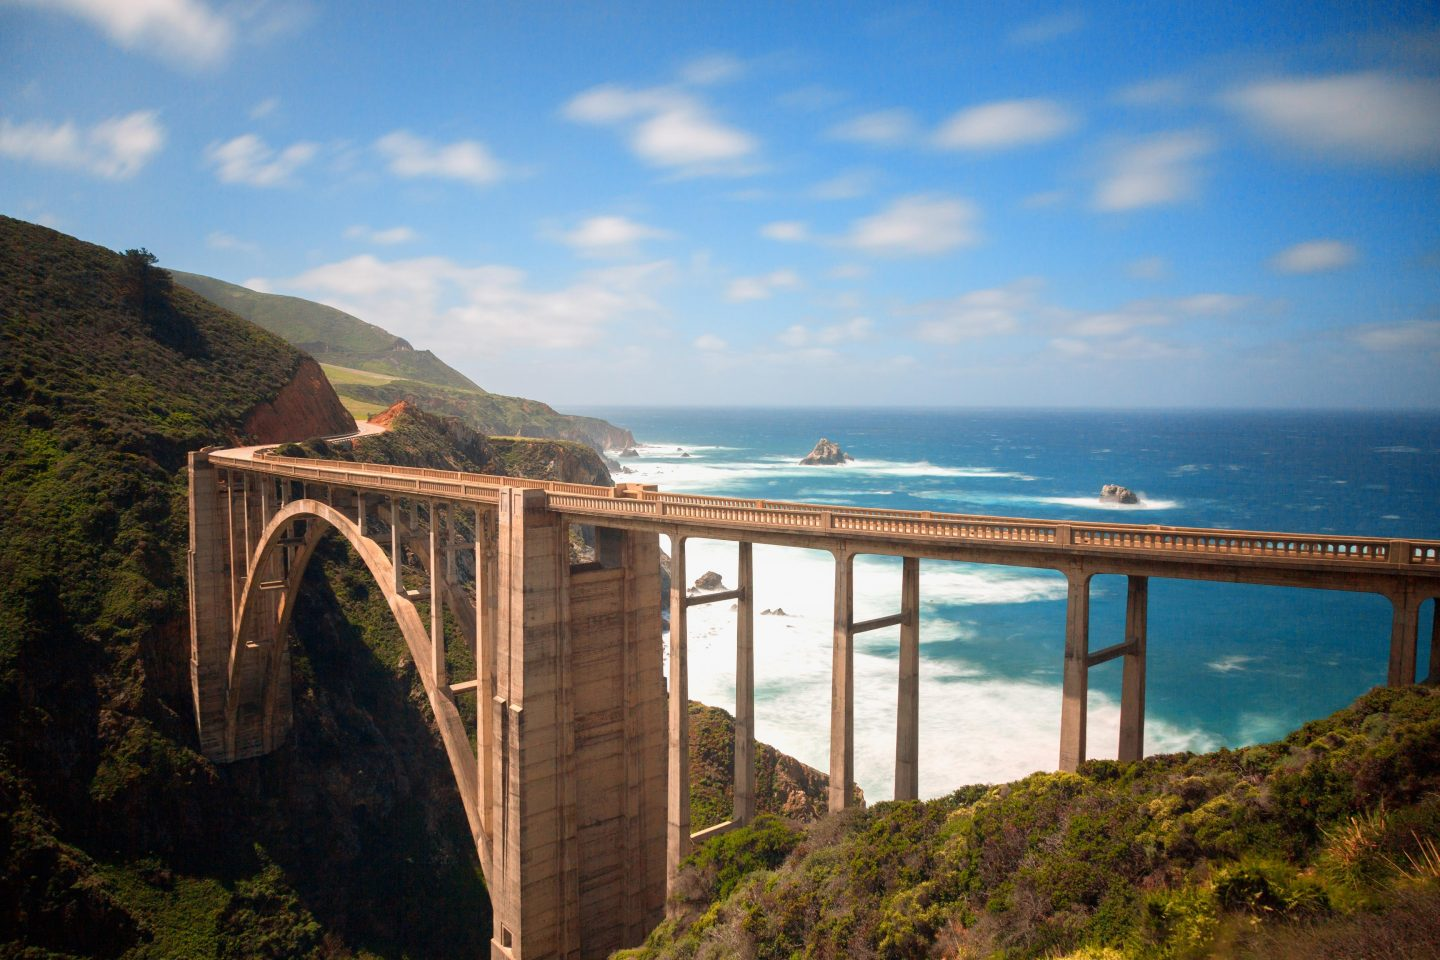 USA: Things You Need To Ensure A Stress-Free Road Trip